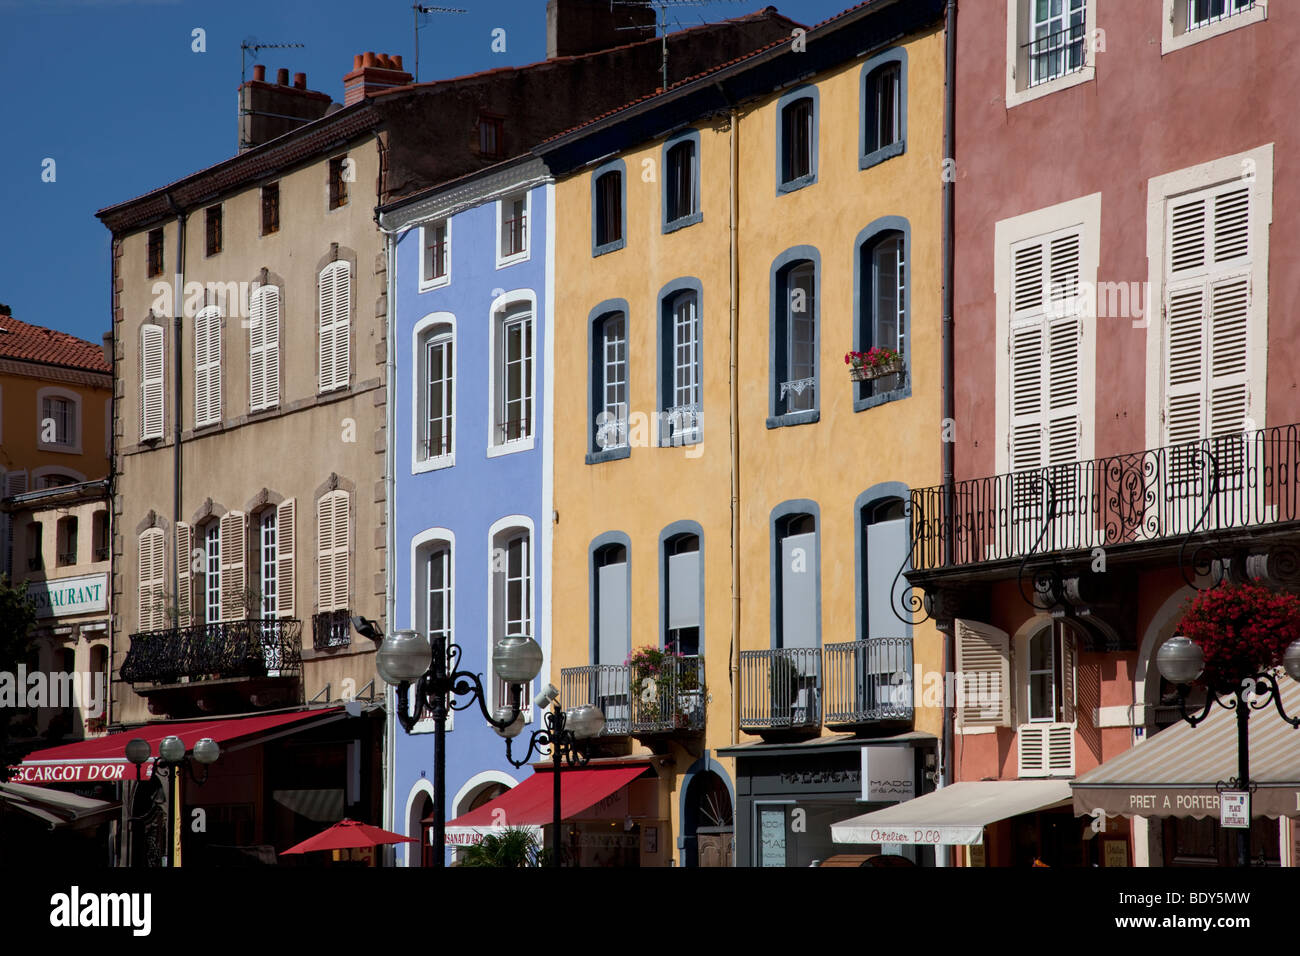 houses around Marketplace Issoire, Auvergne, France - Stock Image